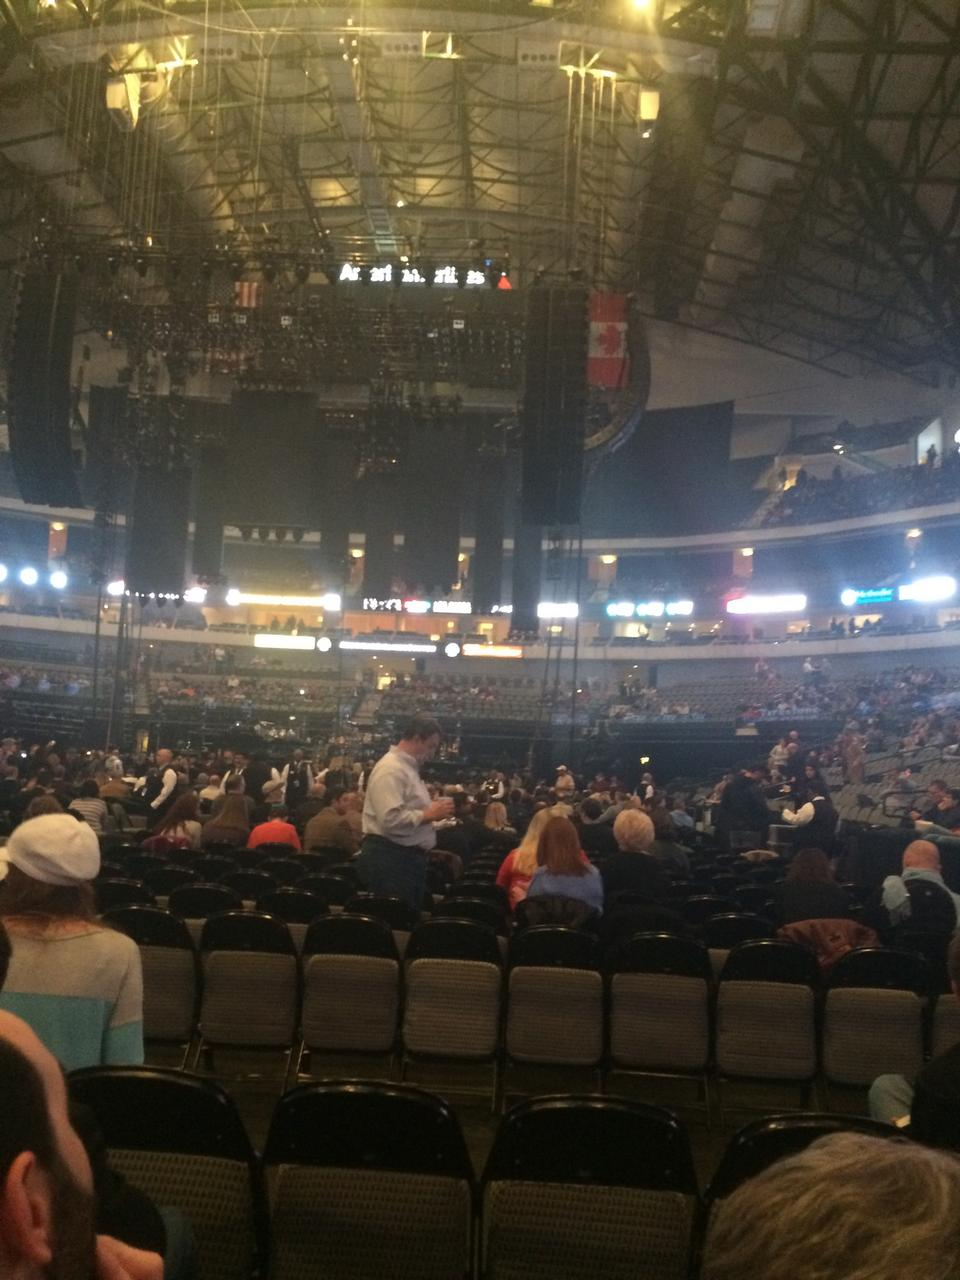 Concert Seat View for American Airlines Center Floor 18